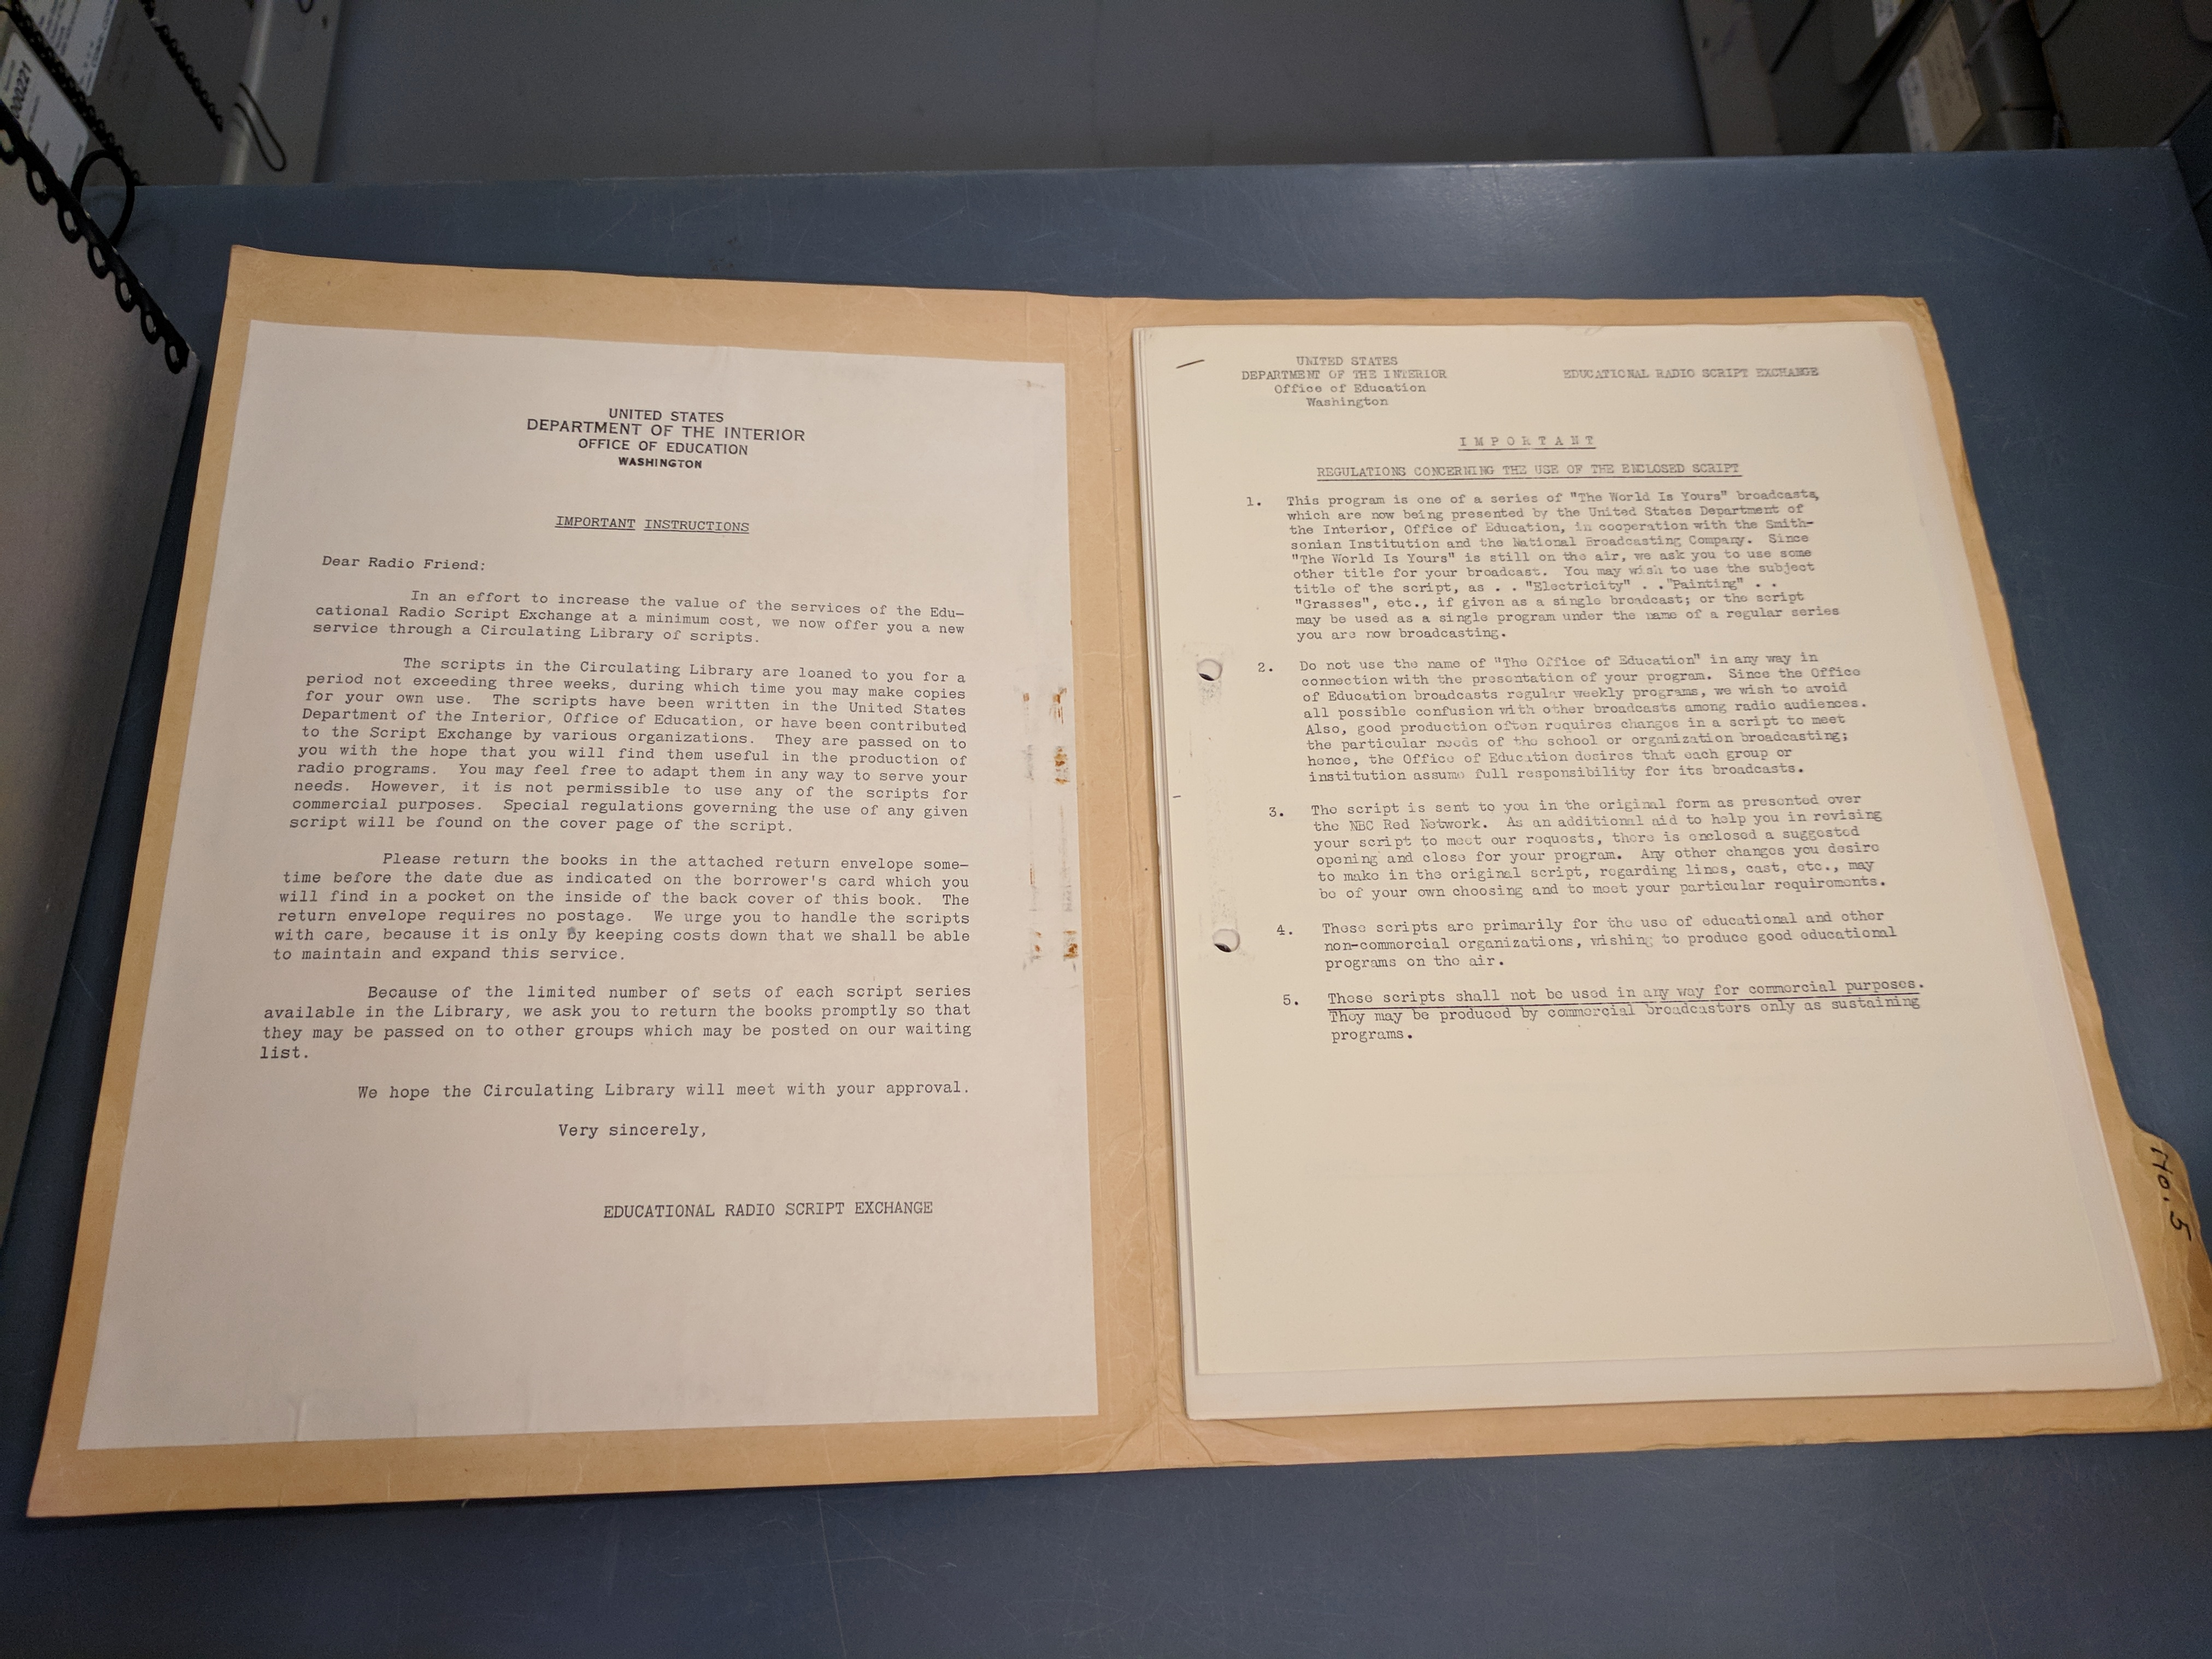 Manilla folder open on a grey metal table. The folder shows a single piece of paper on the left side